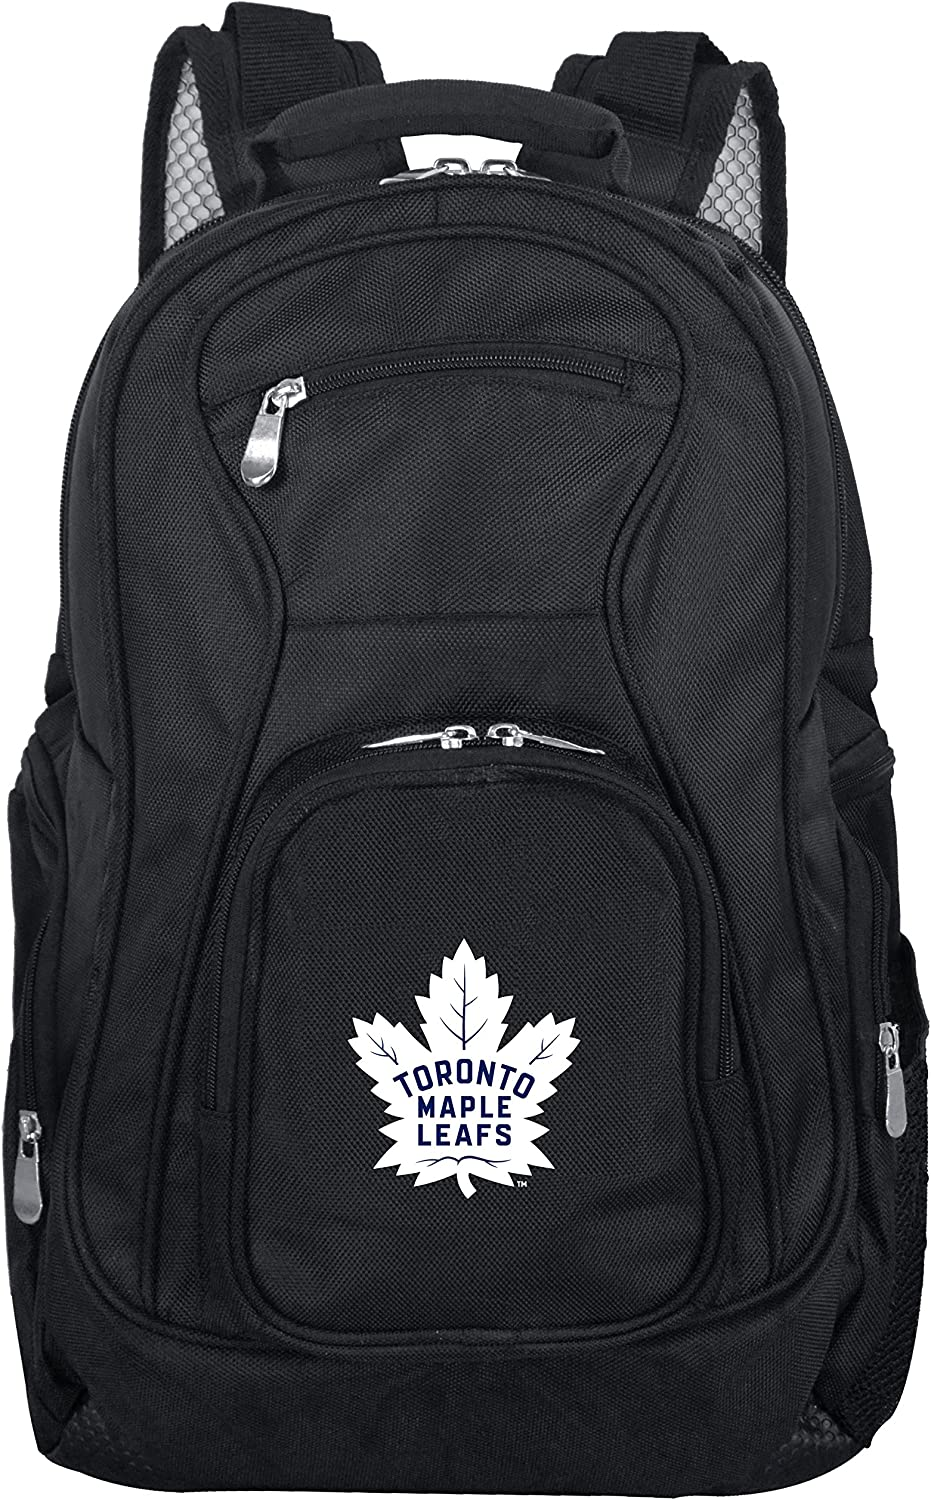 NHL Laptop Backpack, 19-inches, Black